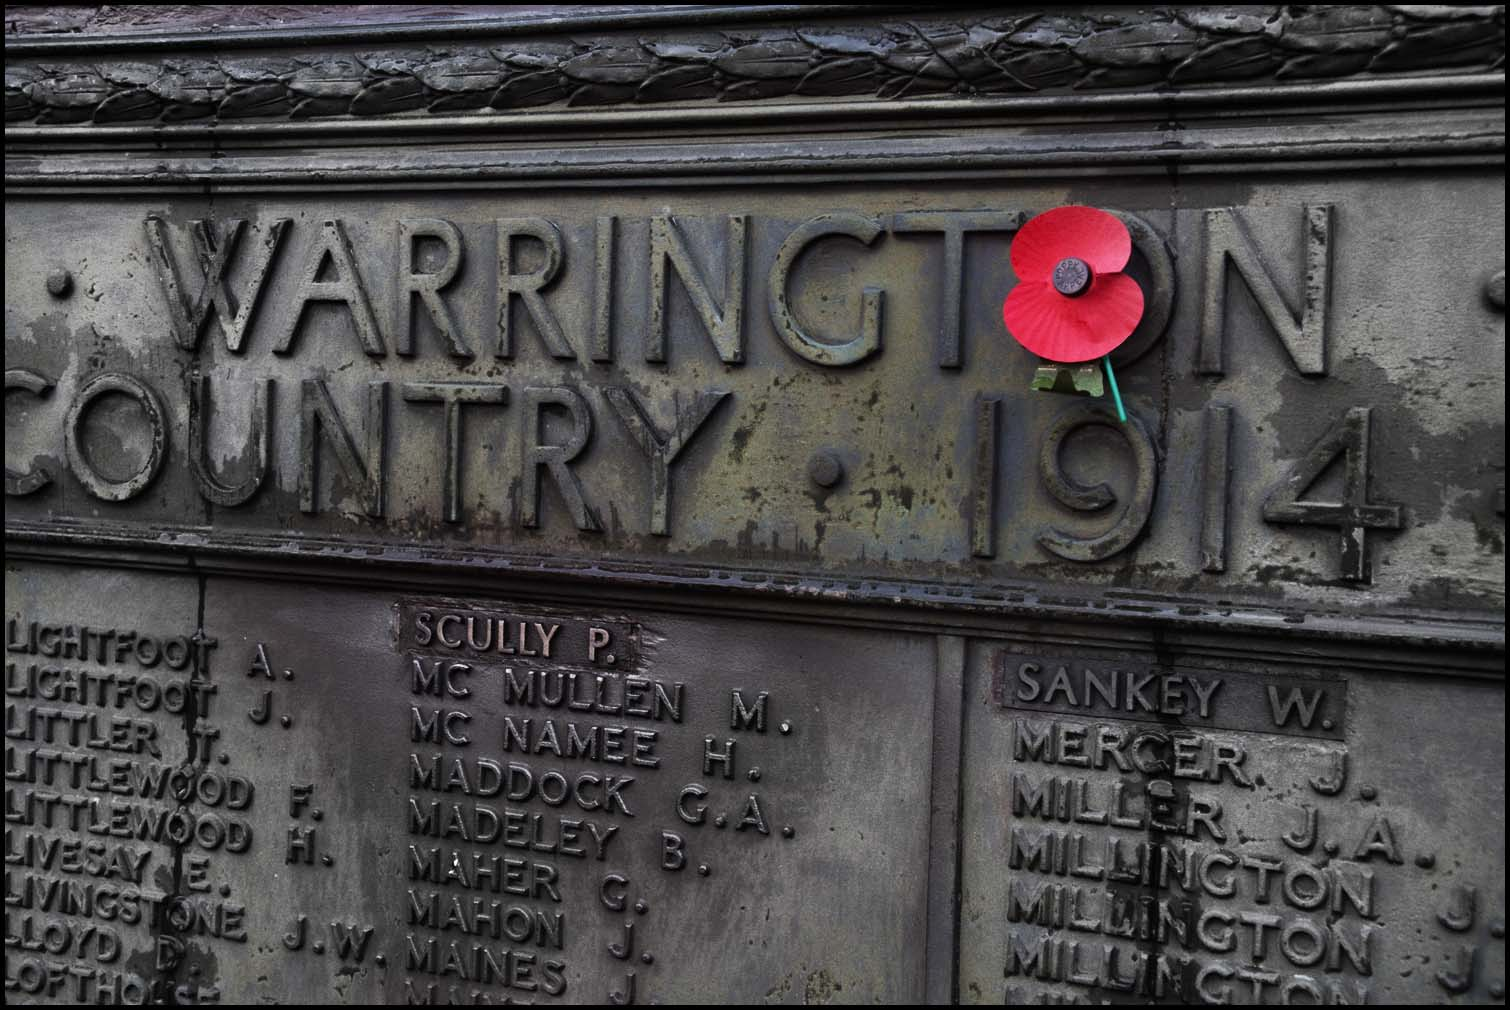 poppy,day,Remember,those,who,gave,their,lives,war,for,our,country,today,red,Warrington,cheshire,cenotaph,dead,soldiers,soldier,fighter,fighters,great,2nd,second,world,WW1,WW2,WWI,WWII,Sunday,Remembrance Sunday,Remembrance,grey,gray,metal,metalic,365days,old,stuff,hotpix!,remembrence,england